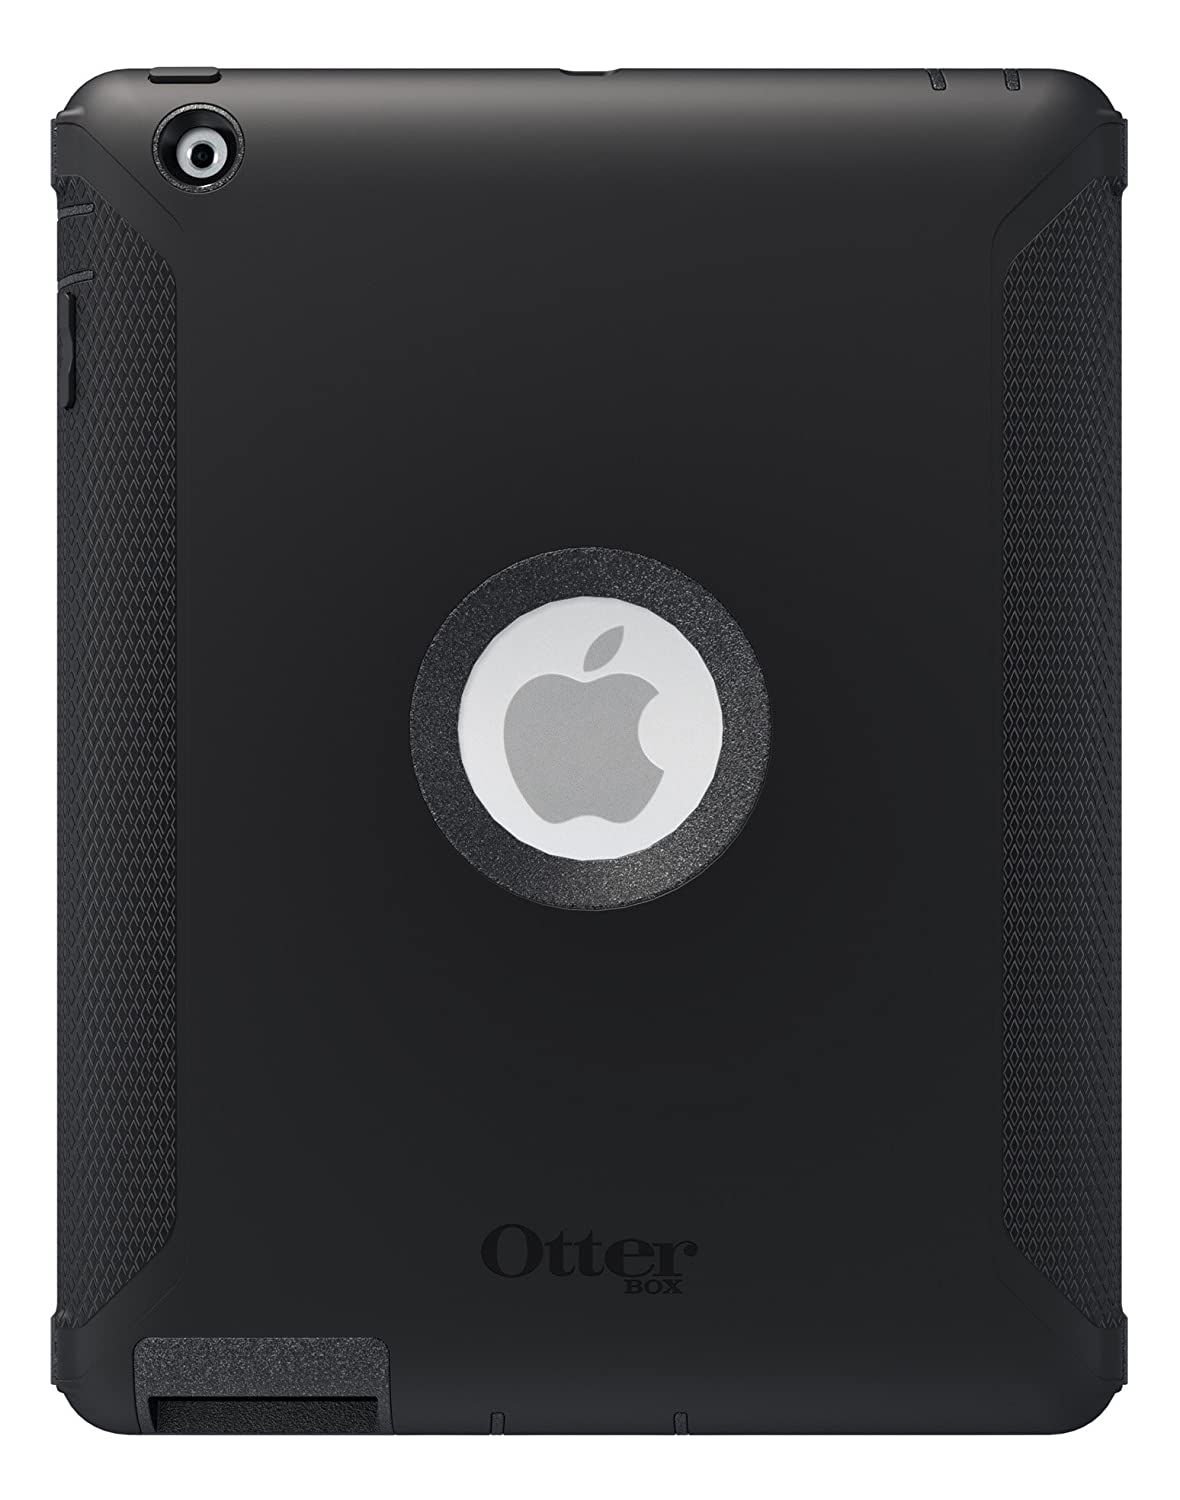 OtterBox DEFENDER SERIES Case for iPad 2/3/4 - Retail Packaging - BLACK